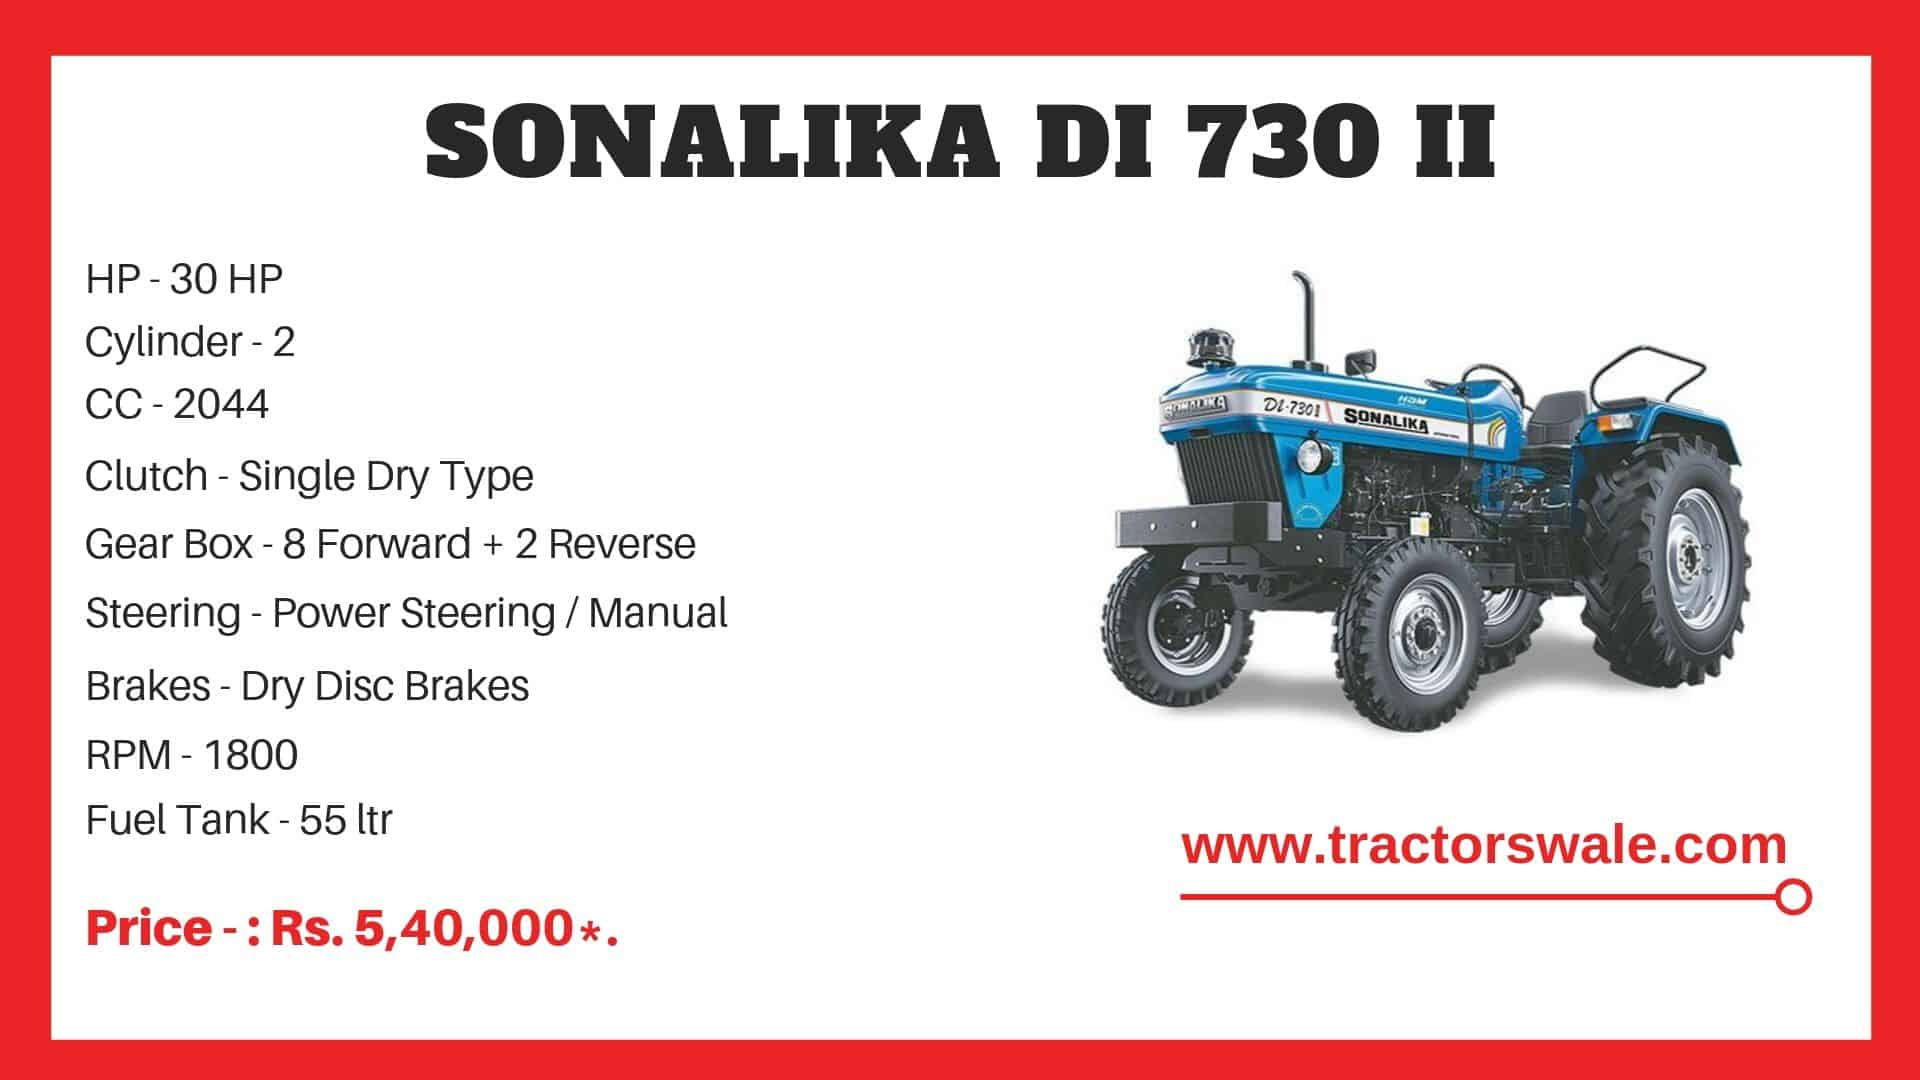 Sonalika DI 730 tractor specifications